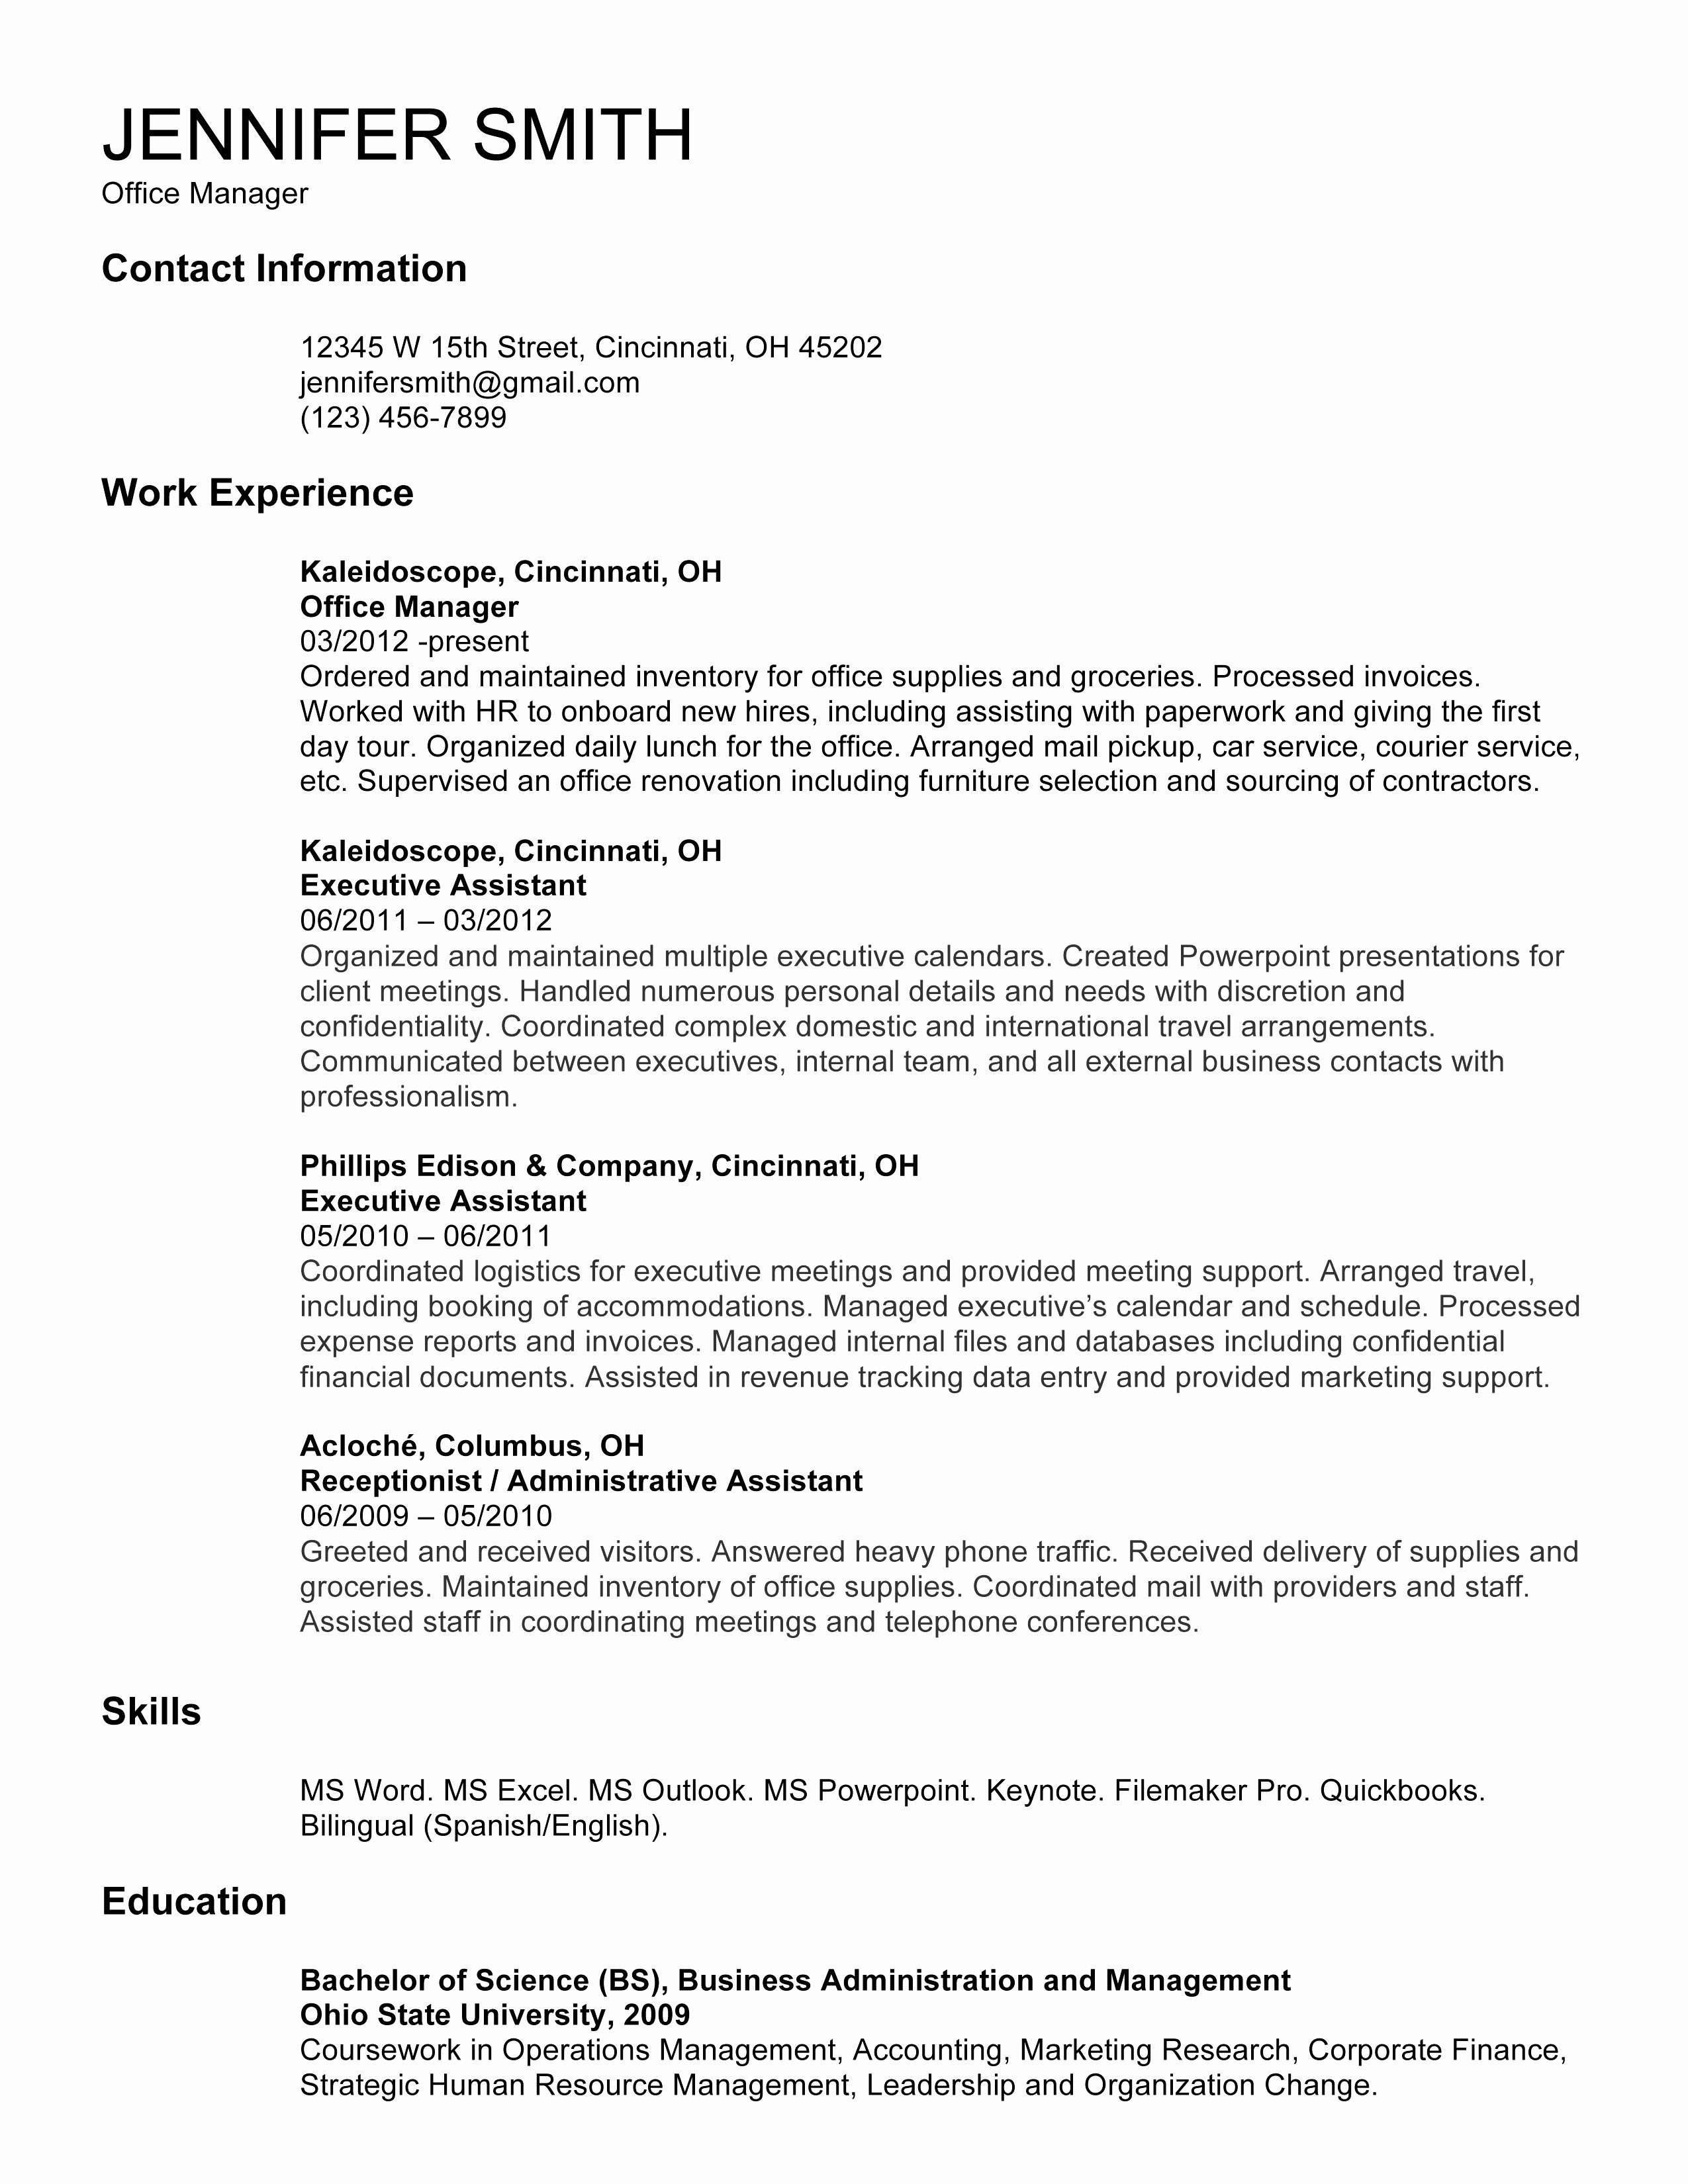 resume template for receptionist example-How To Make A Resume For A Receptionist Job Valid Fresh Reception Resume Luxury American Sample New Student 0d Where 2-n